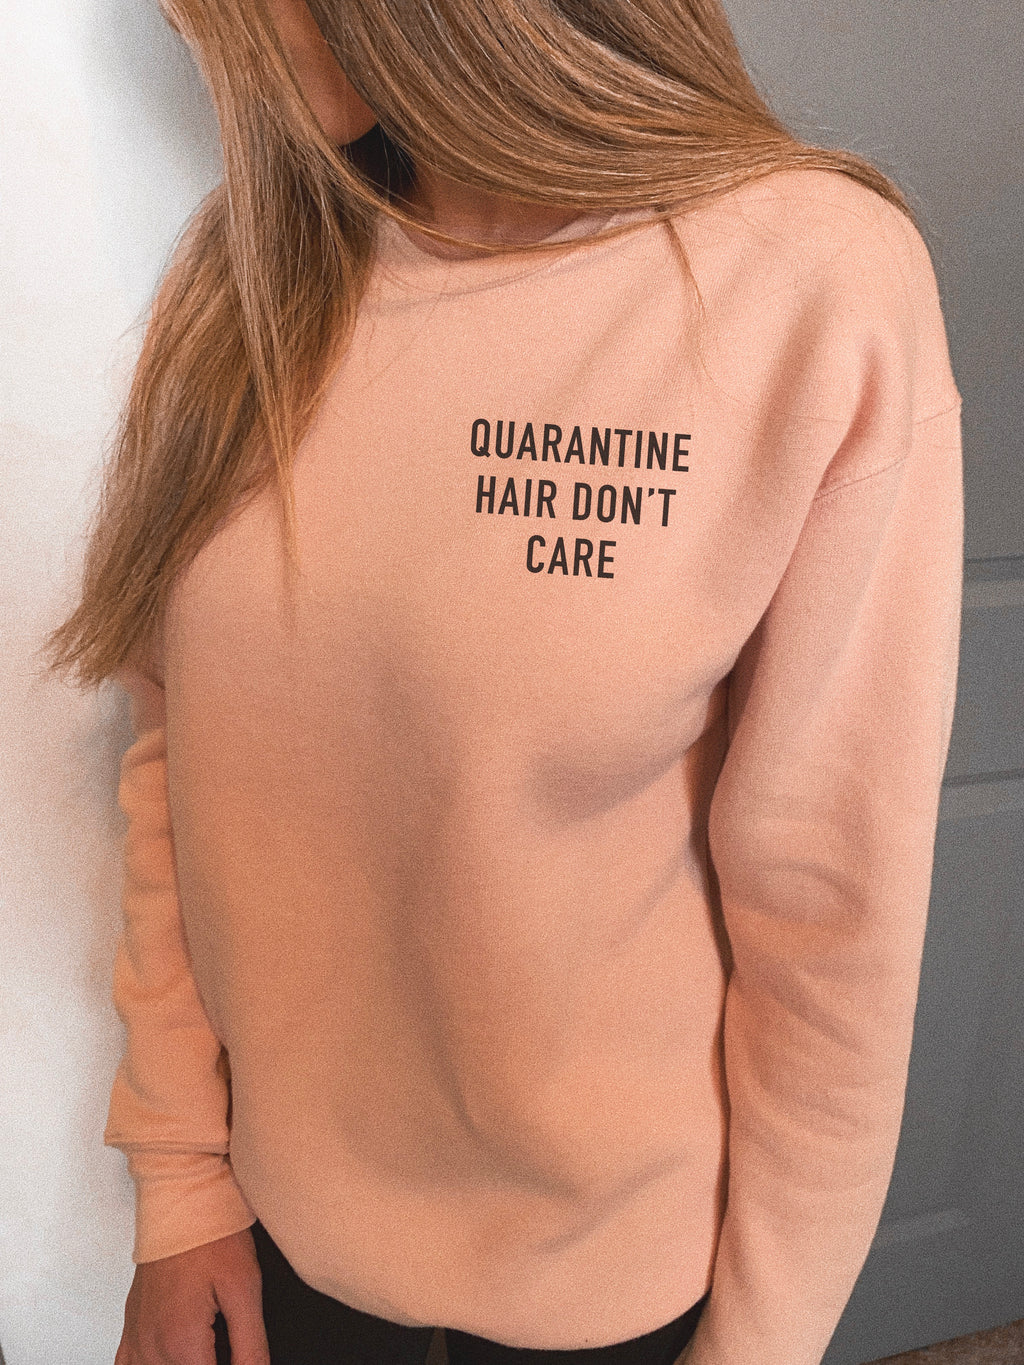 This sweatshirt is great to wear if you plan on lounging around at home. Whether you will be watching Netflix and chilling or just relaxing at home, this funny sweatshirt comes in handy as a reminder that you're rocking your quarantine hair and you just don't care!